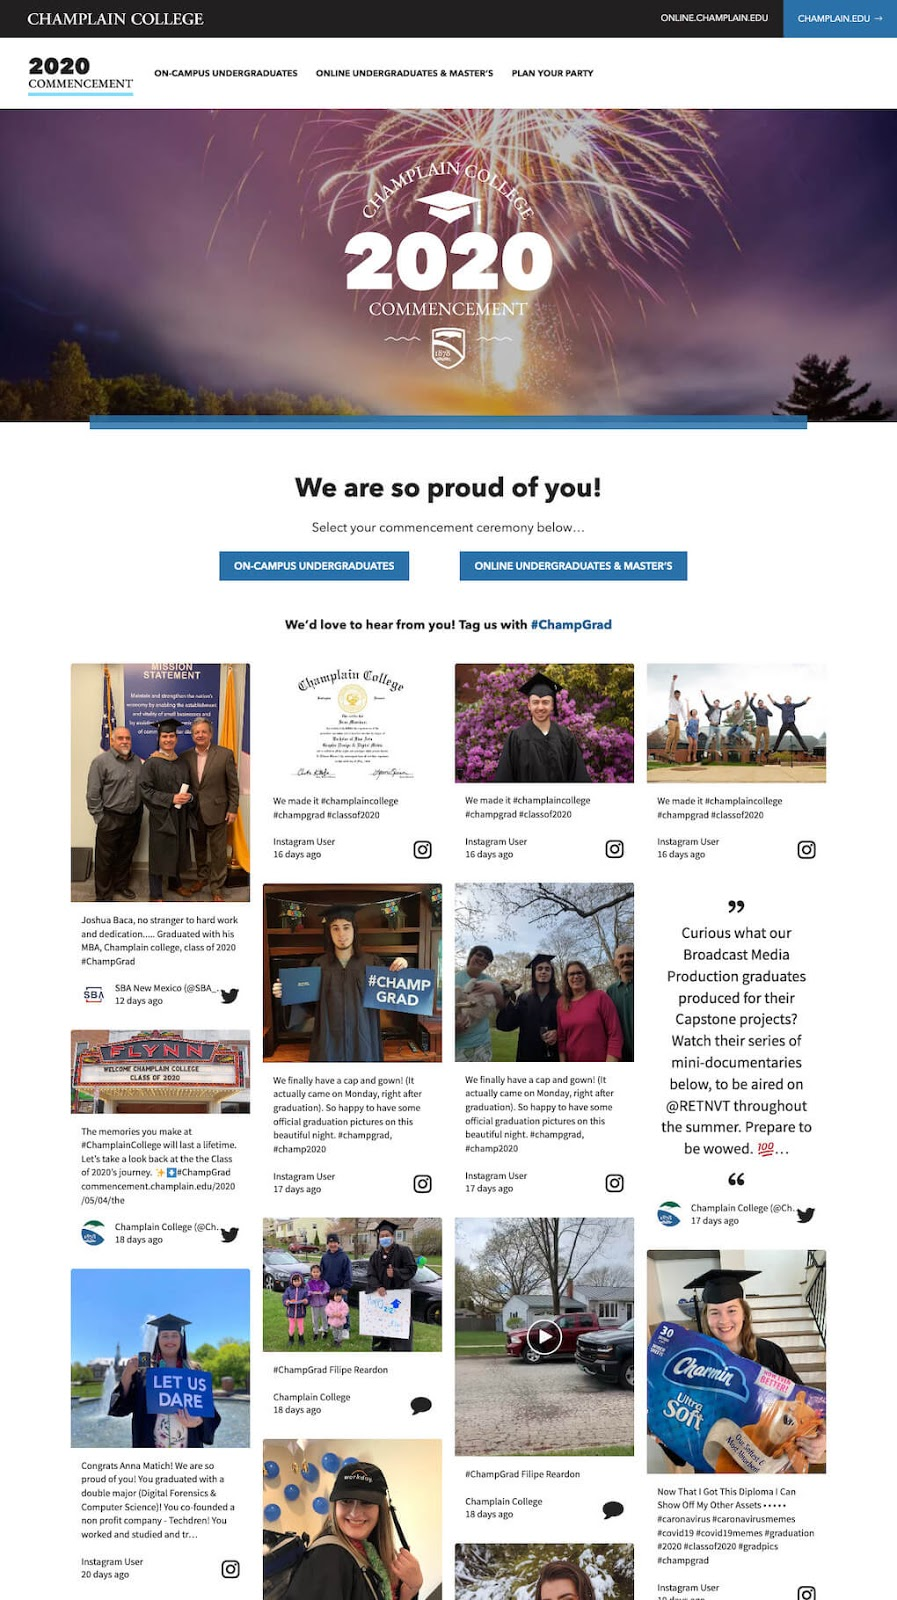 """Champlain College microsite. The festive header shows fireworks and reads """"Champlain College 2020 Commencement"""". The page copy reads """"We are so proud of you!"""" and buttons provide links to the ceremonies for on-campus and online students, respectively. Right underneath it, the social wall for the hashtag #ChampGrad is embedded."""